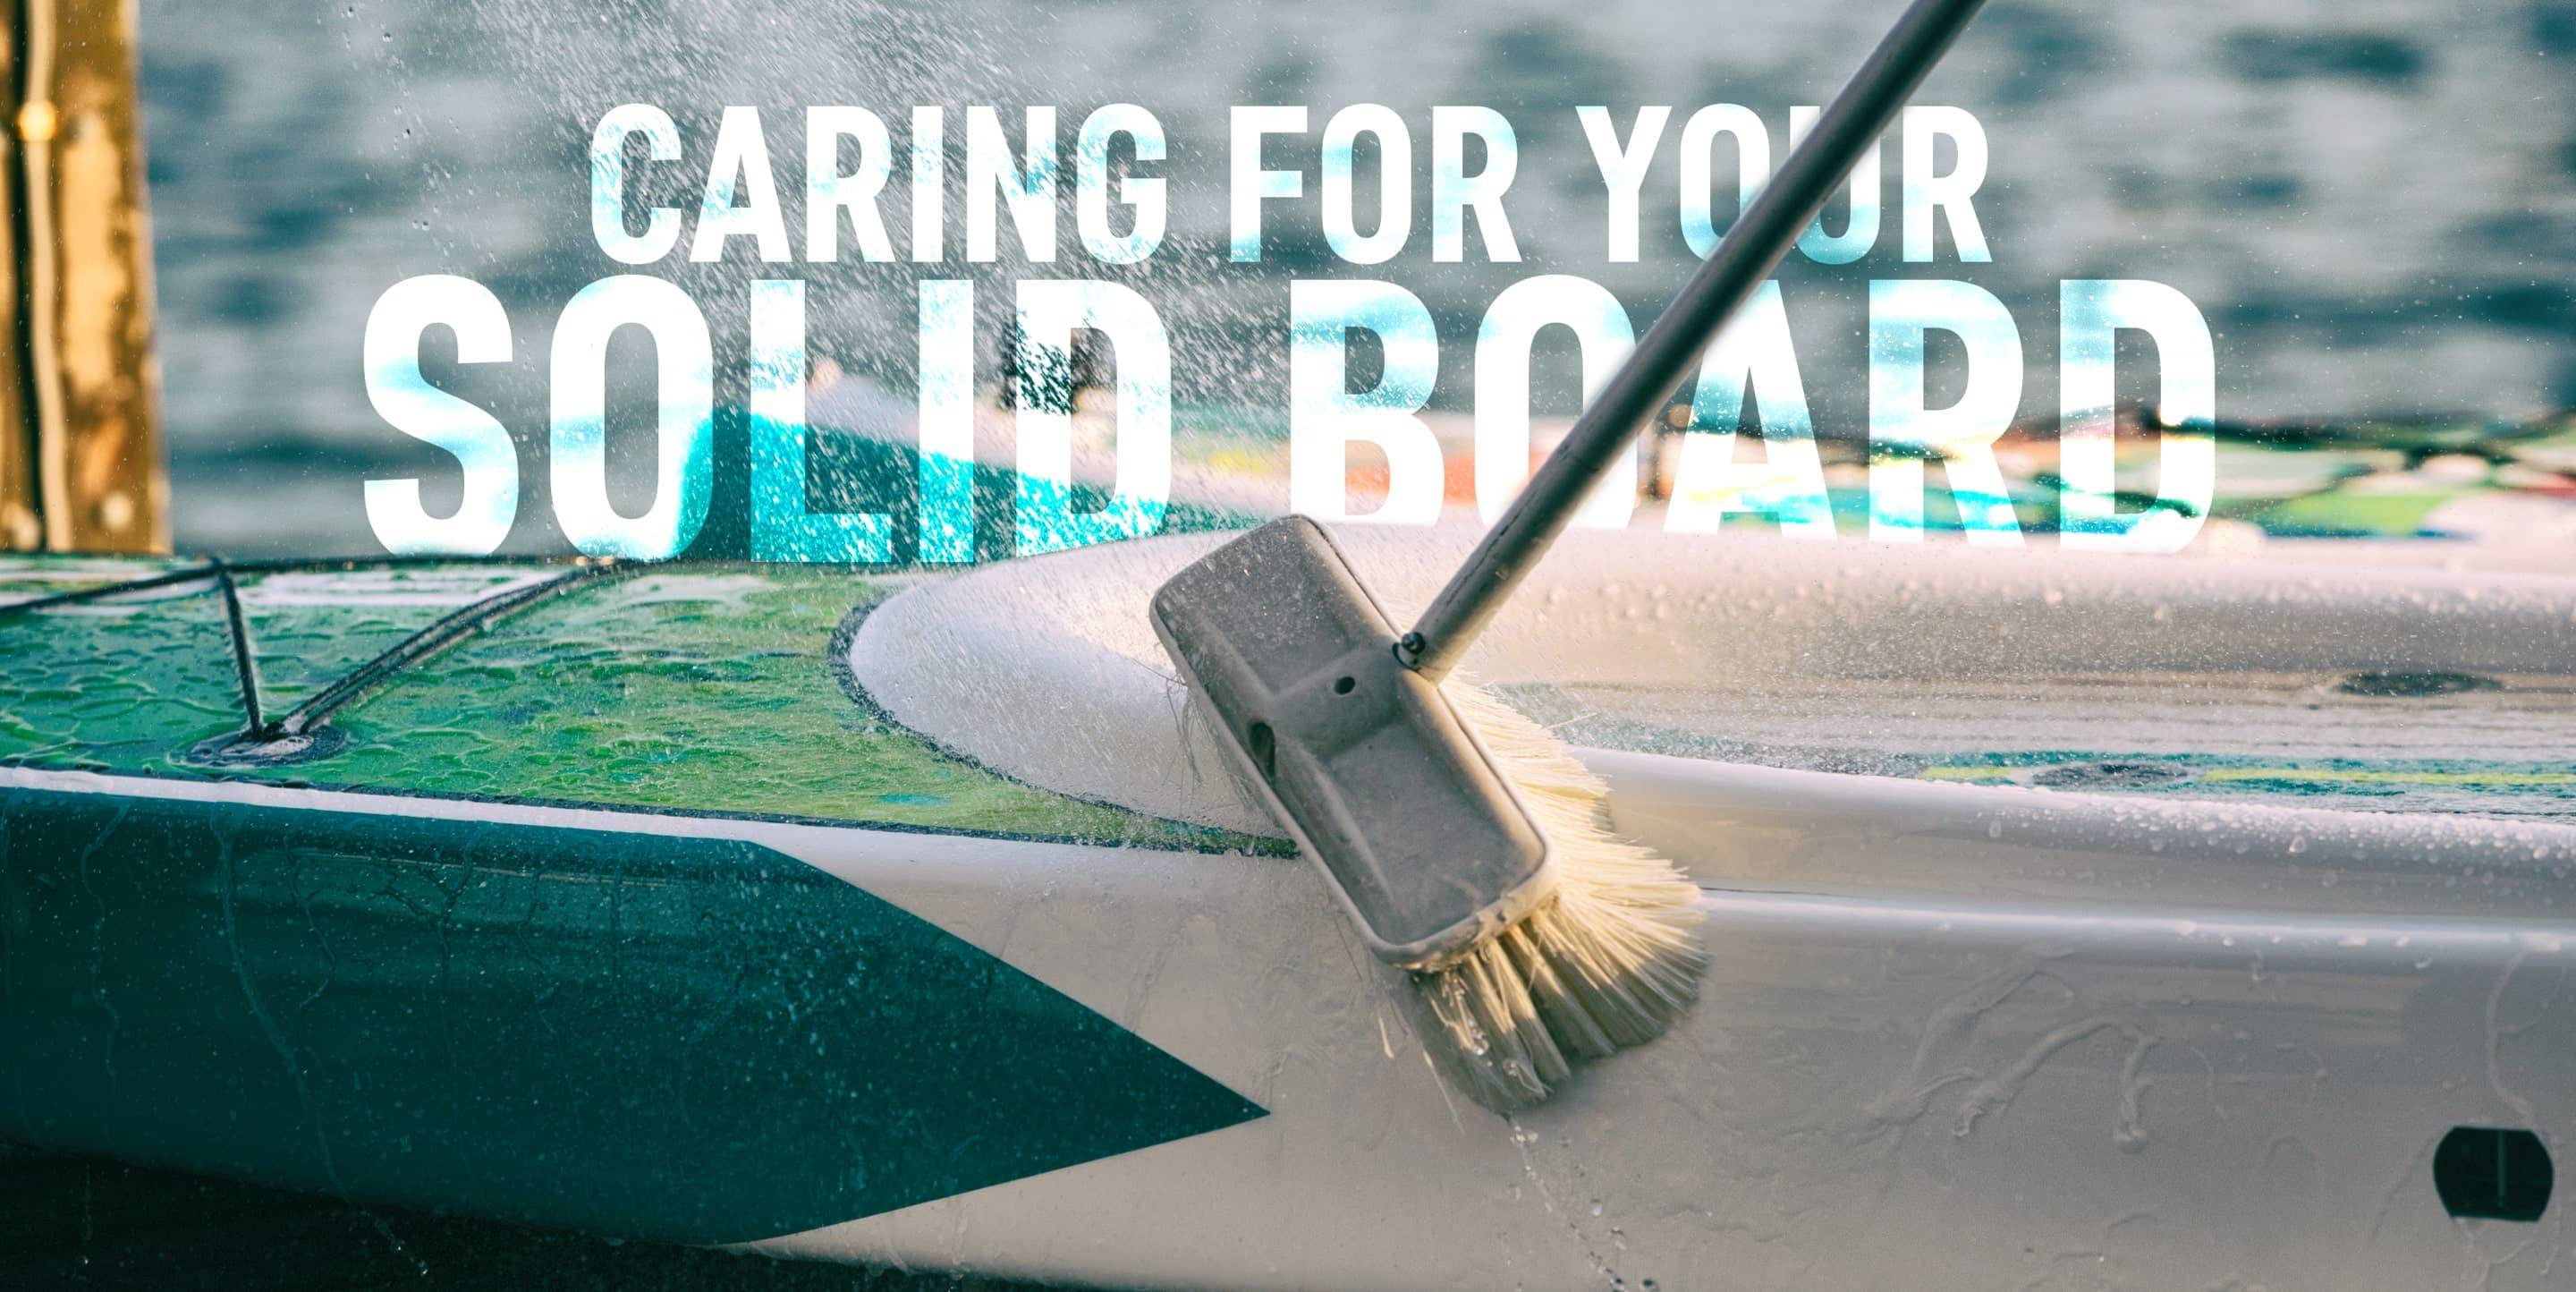 BOTE paddle board being washed with a brush